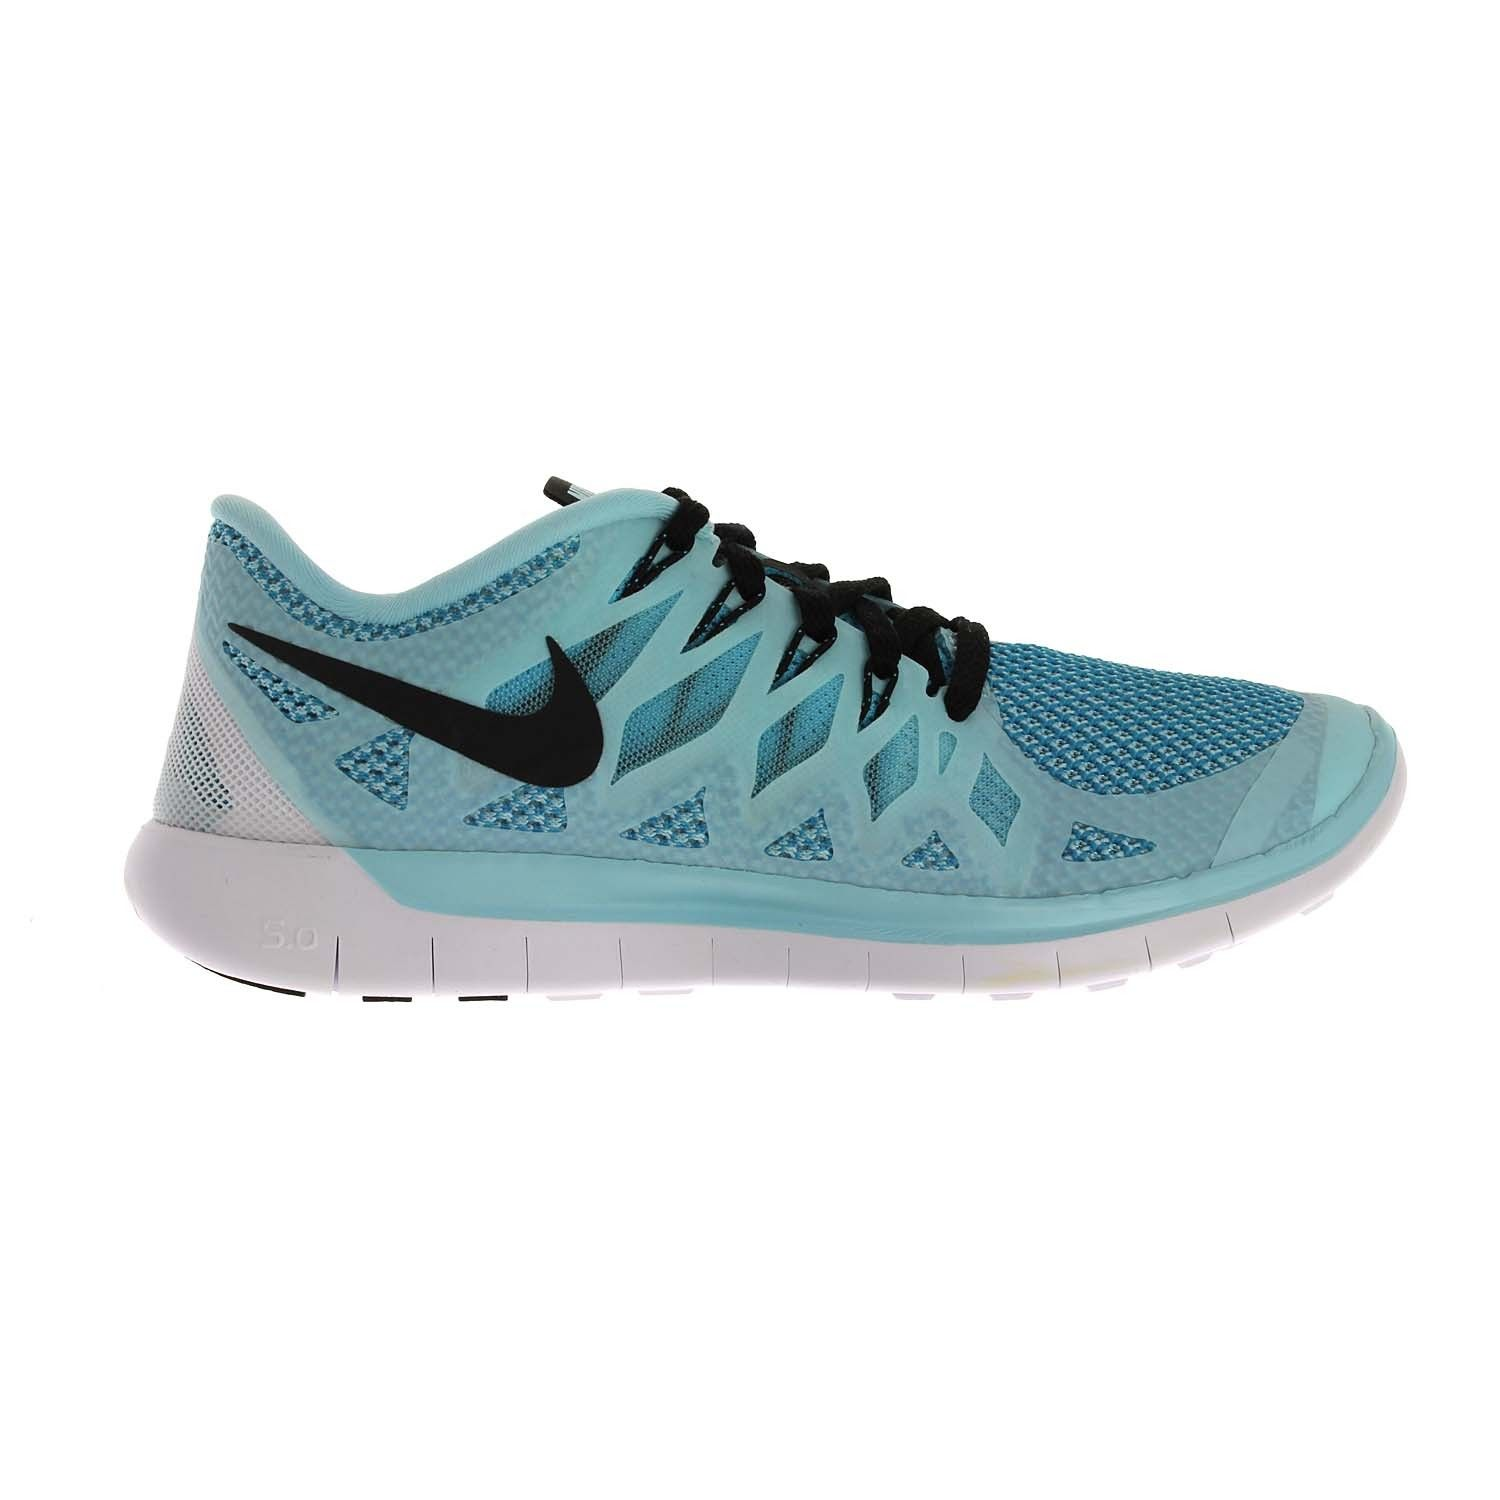 Nike free · Nike Free 5.0 (642199-402) · Nike FreeRunning Shoes